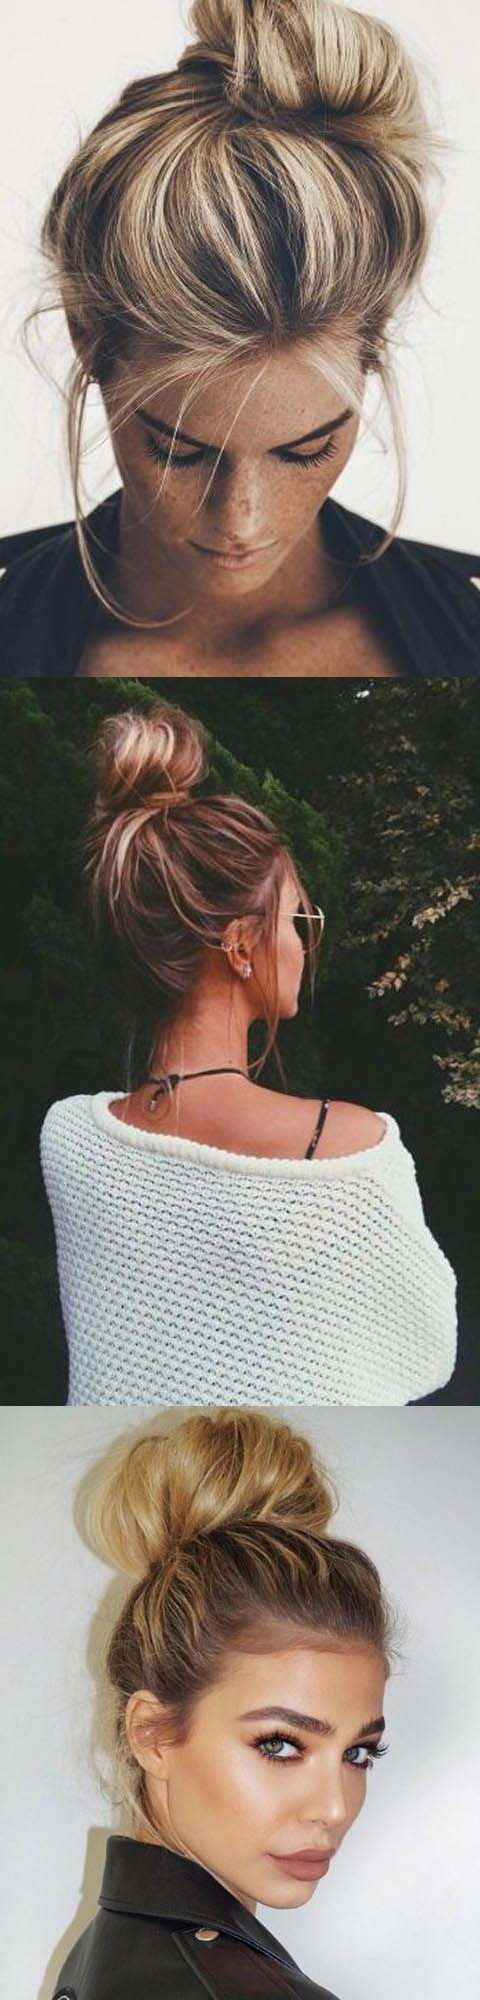 Easy top knot ideas